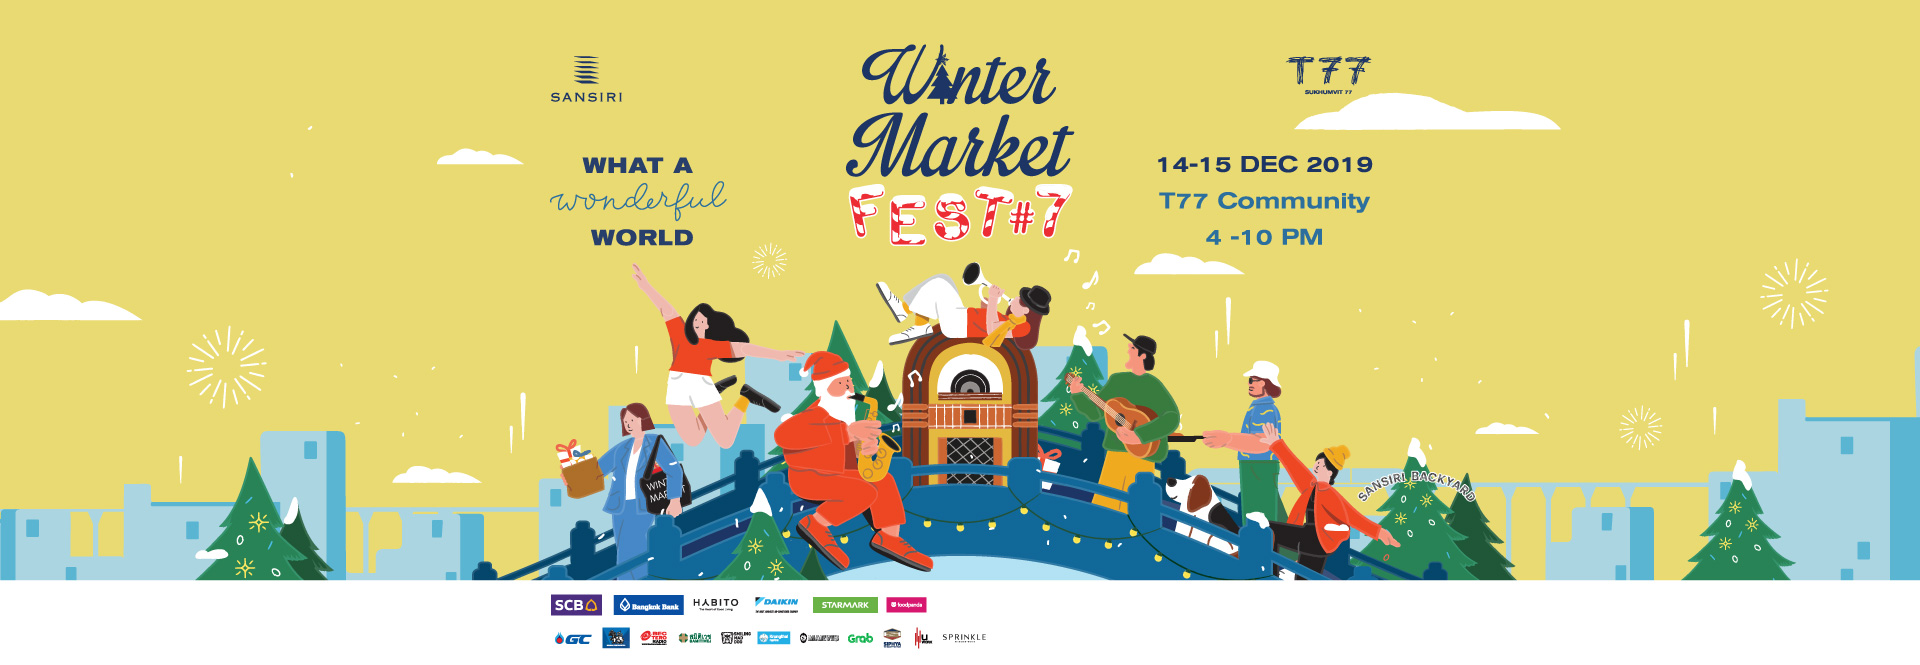 Winter market fest7